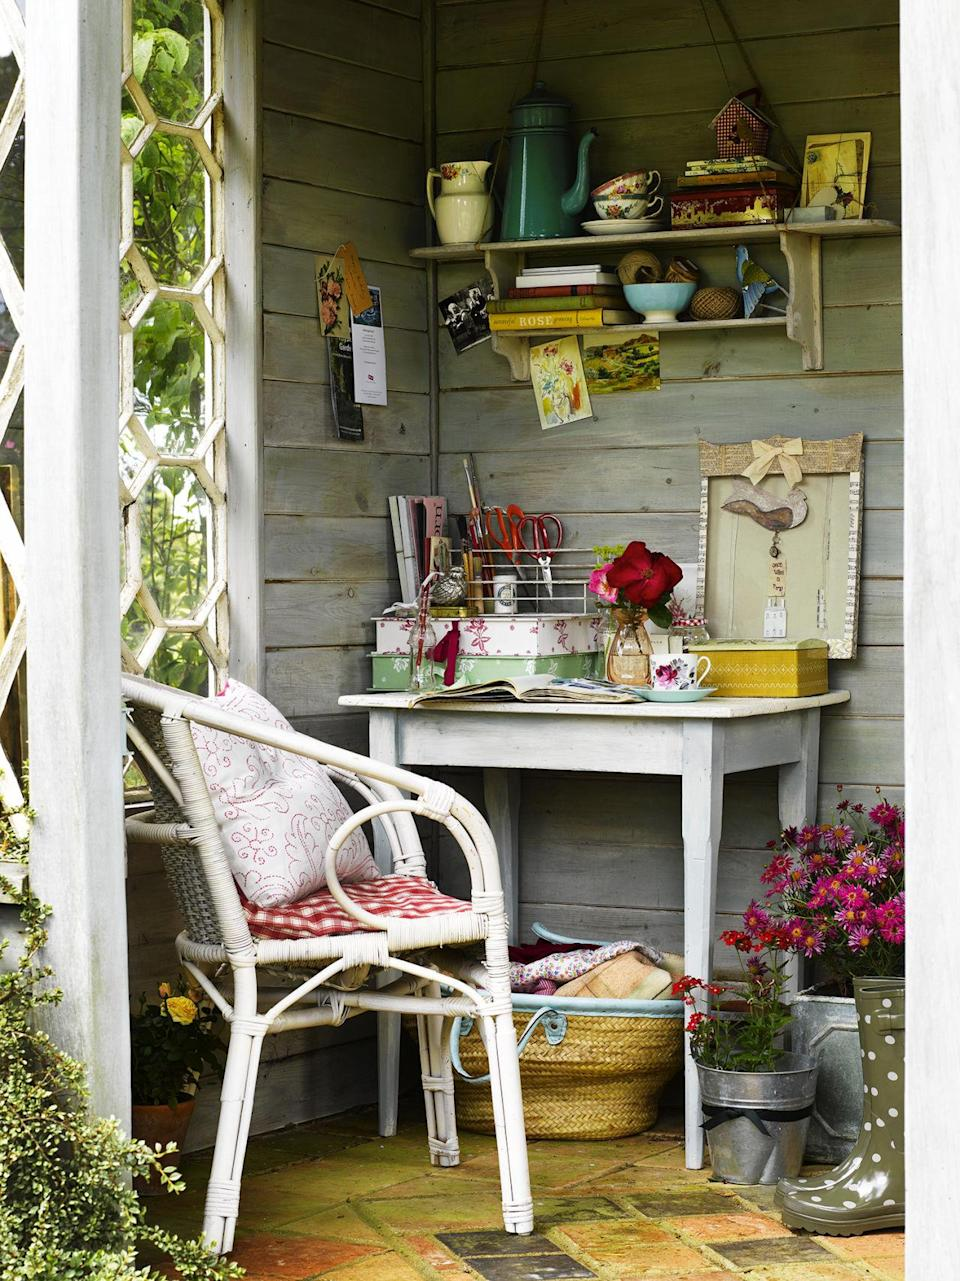 """<p>This summerhouse offers an idyllic cool shady corner to work in during the warm summer months<span>.</span></p><p><span><strong>MORE: </strong></span><span><strong><a rel=""""nofollow noopener"""" href=""""http://www.countryliving.co.uk/homes-interiors/interiors/how-to/a689/garden-shed-design-ideas/"""" target=""""_blank"""" data-ylk=""""slk:7 ways to take your shed from creak to chic"""" class=""""link rapid-noclick-resp"""">7 ways to take your shed from creak to chic</a> </strong></span></p><p><span><strong><em>This feature is from Country Living magazine. </em><a rel=""""nofollow noopener"""" href=""""http://www.hearstmagazines.co.uk/cl/country-living-magazine-subscription-website?utm_source=countryliving.co.uk&utm_medium=referral&utm_content=nav-bar"""" target=""""_blank"""" data-ylk=""""slk:Subscribe here."""" class=""""link rapid-noclick-resp""""><em>Subscribe here.</em></a></strong></span></p>"""